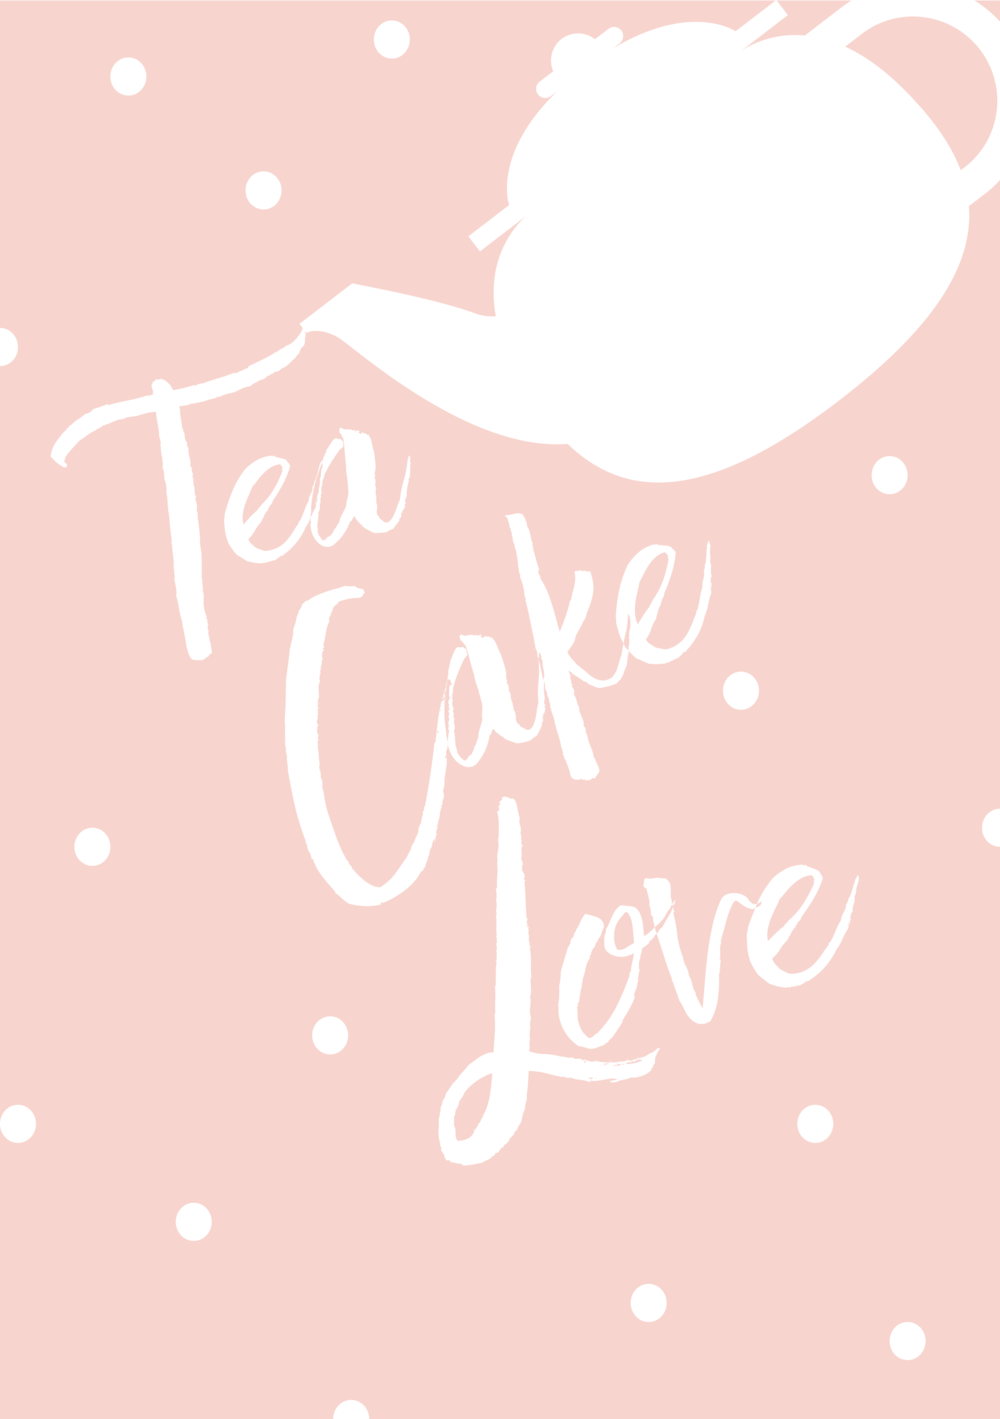 Tea-cake-love-pink.png